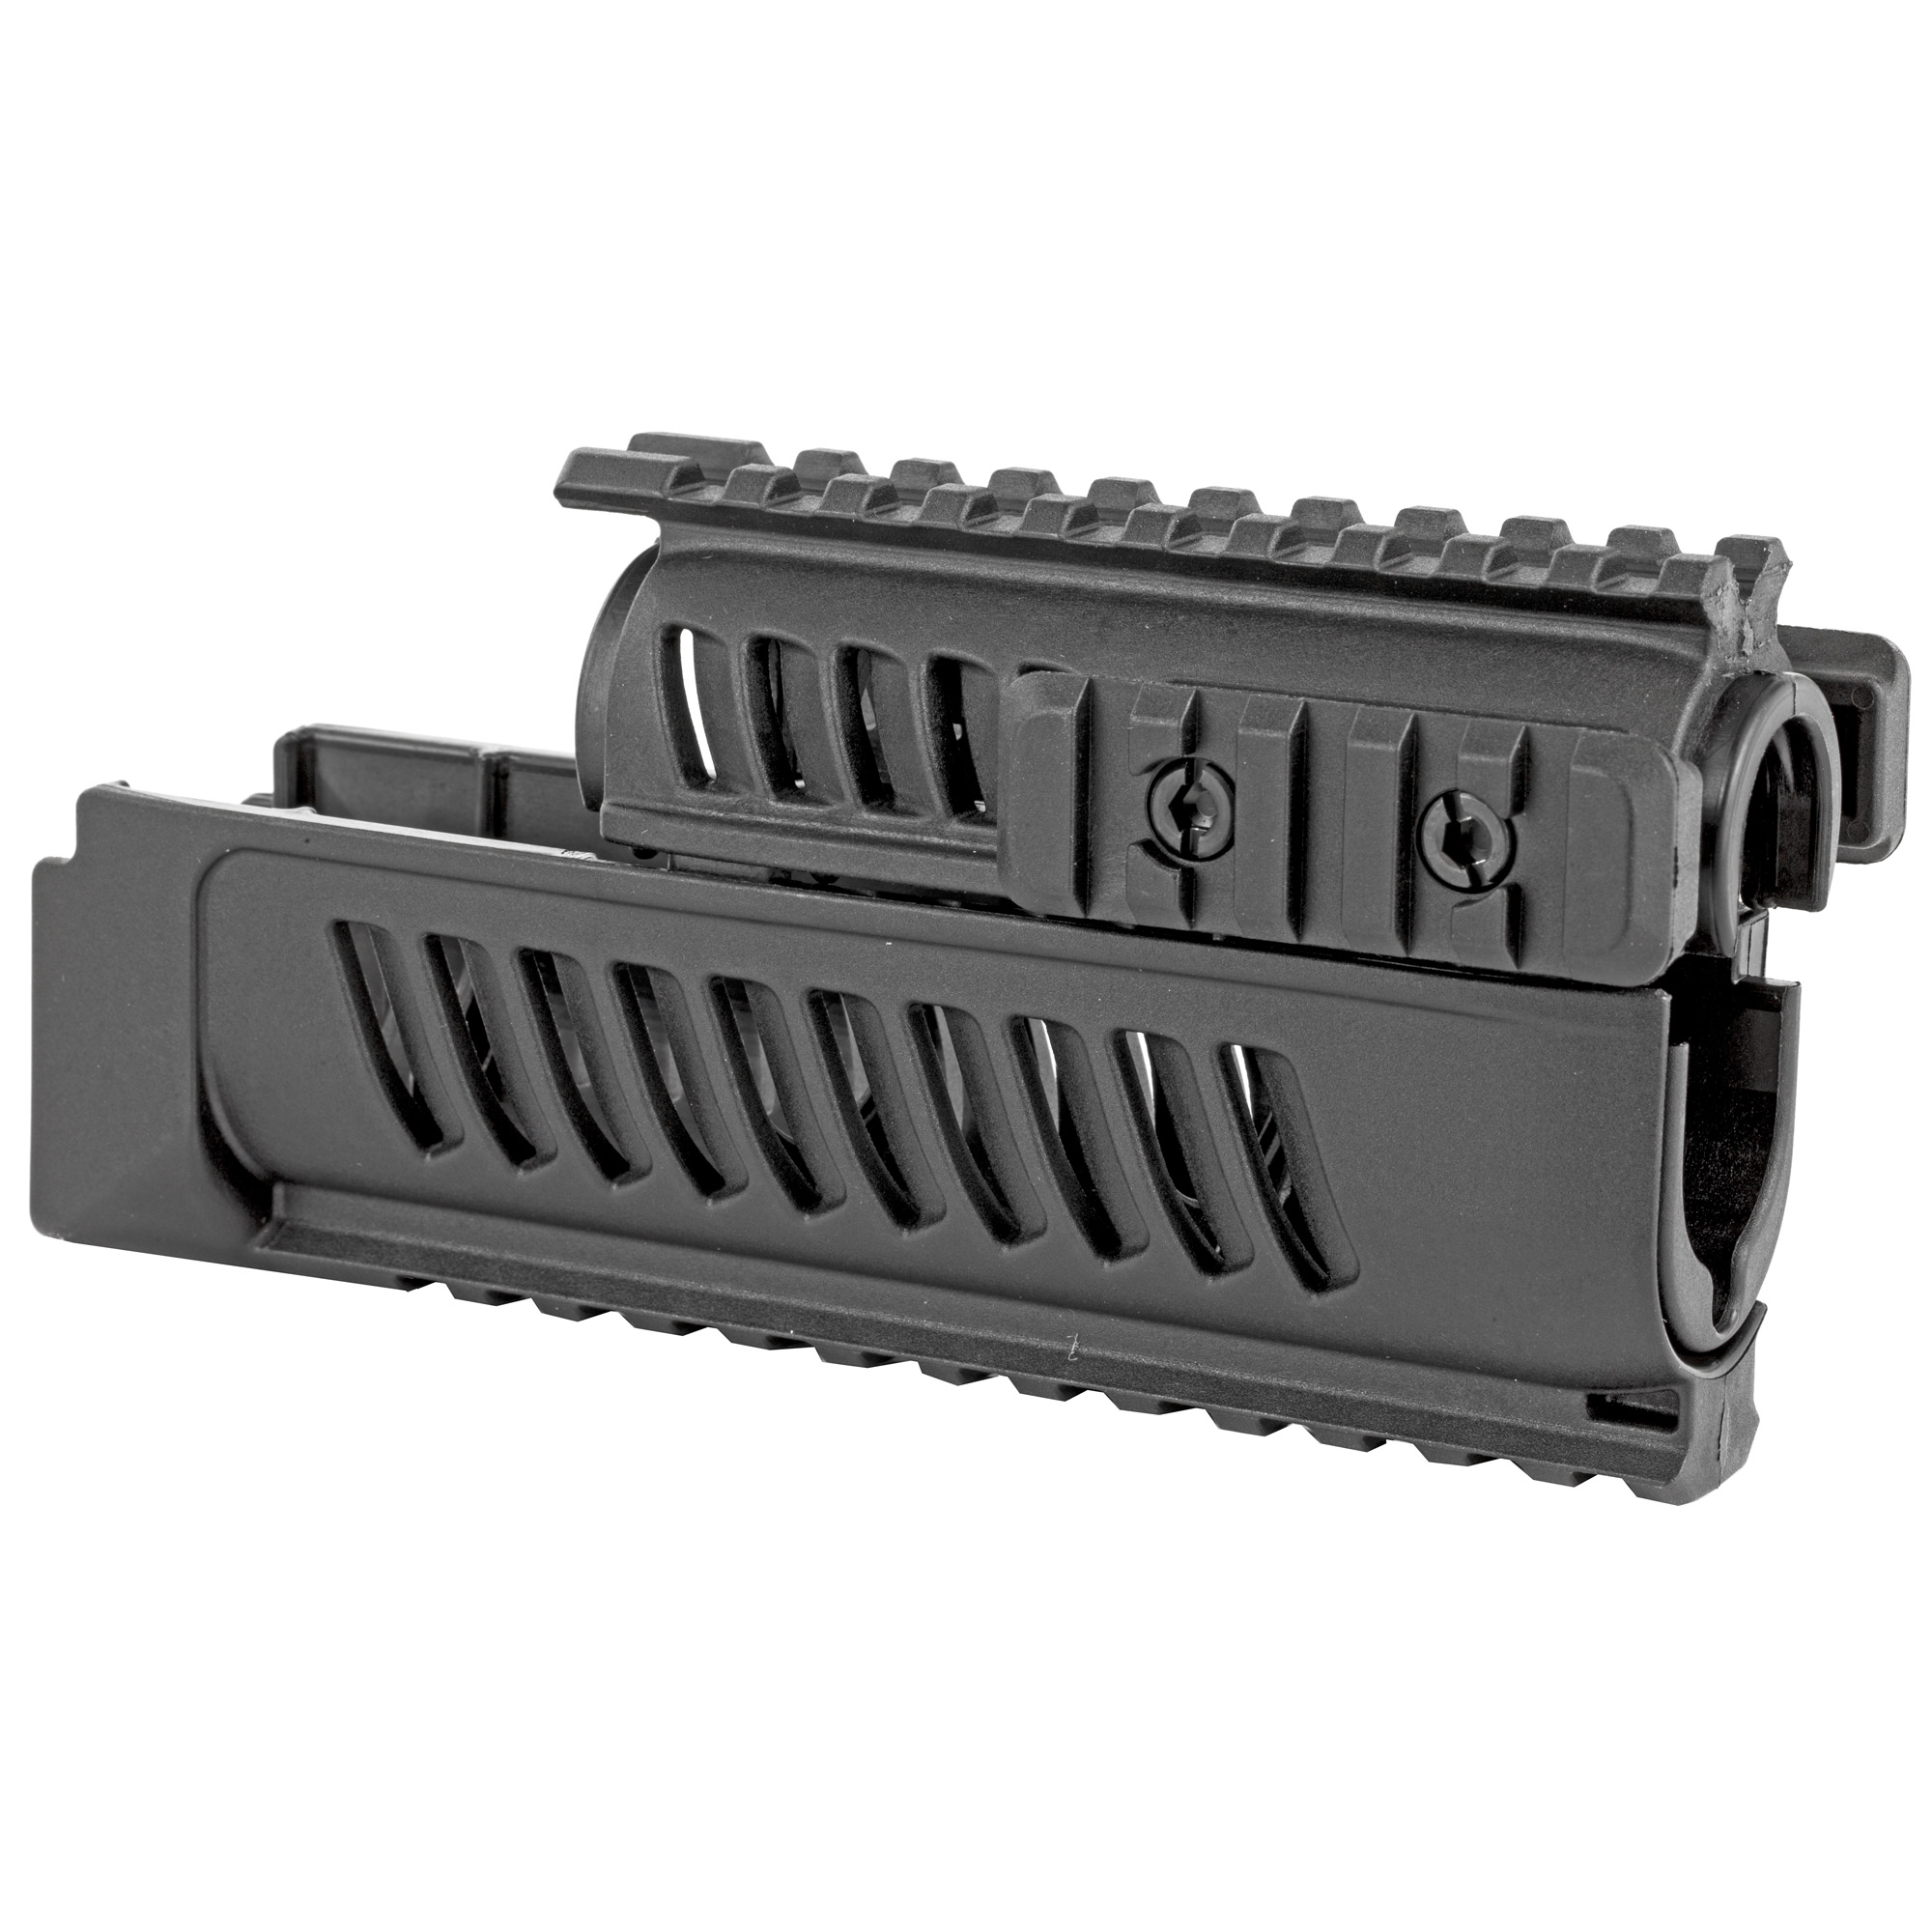 FAB Defense AK47 AK74 MAK90 Tactical Quad Rail Polymer Handguard